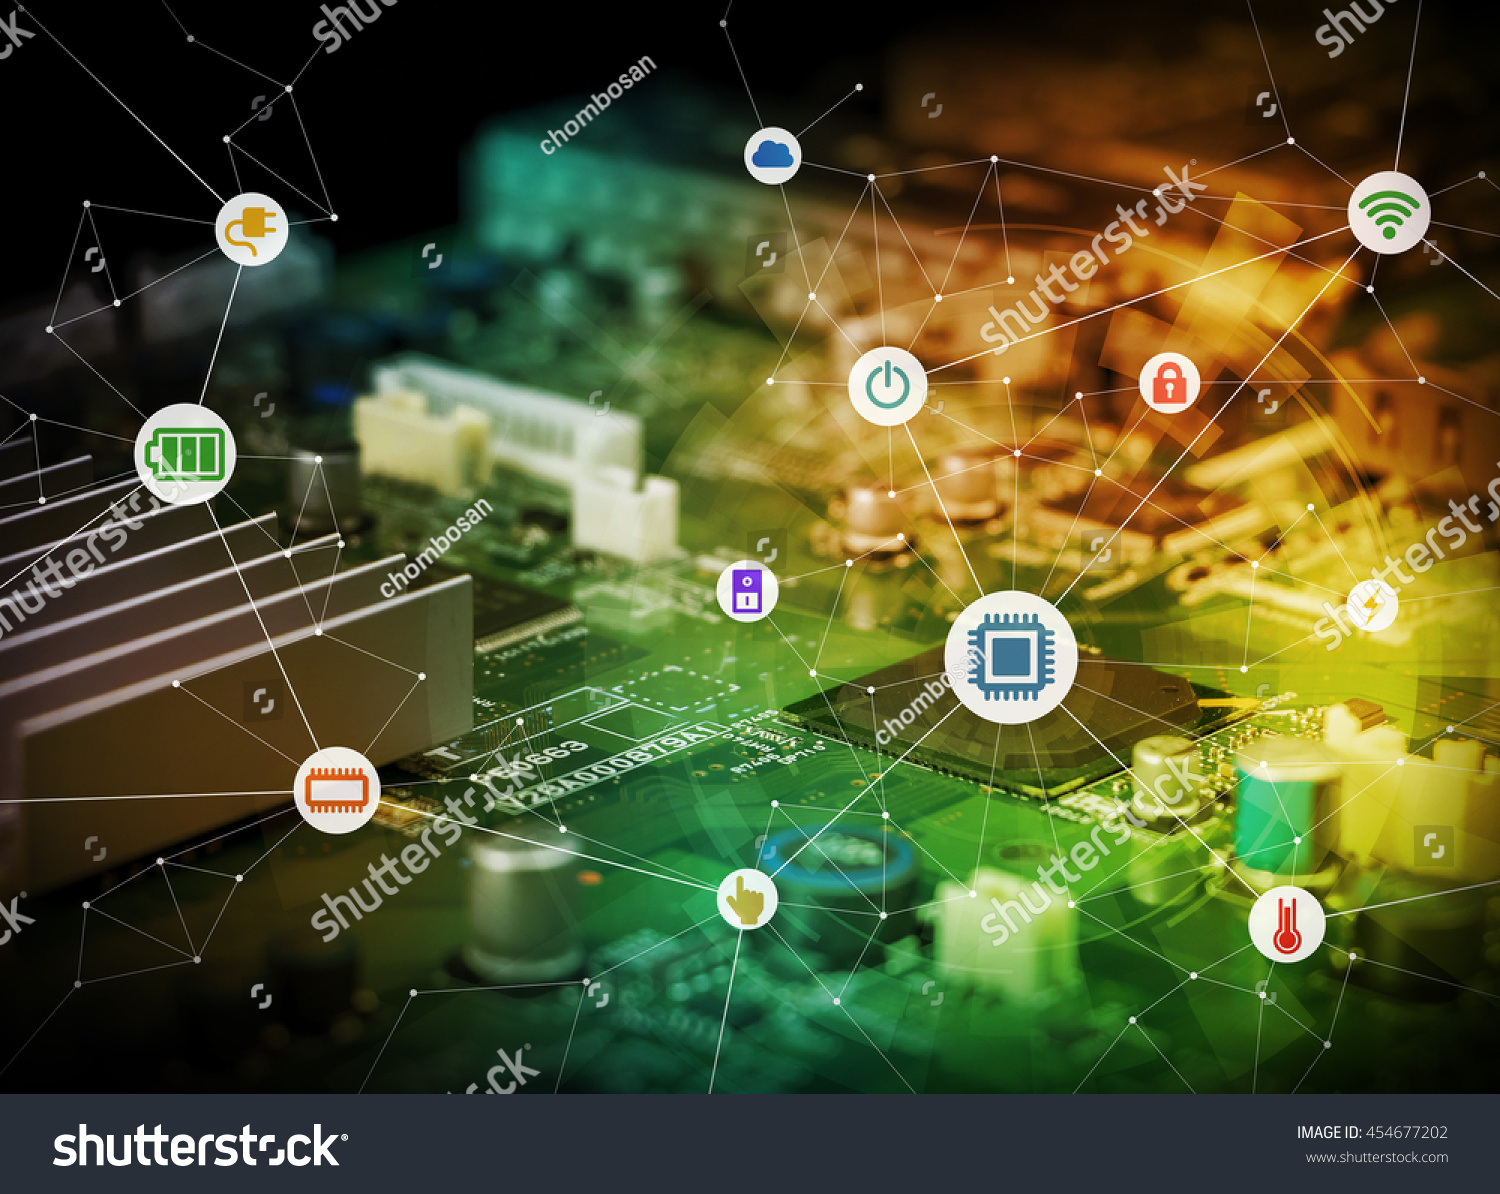 Wired Icons Various Electric Component Function Stock Photo Edit Circuit Game Of Or And Background Board Abstract